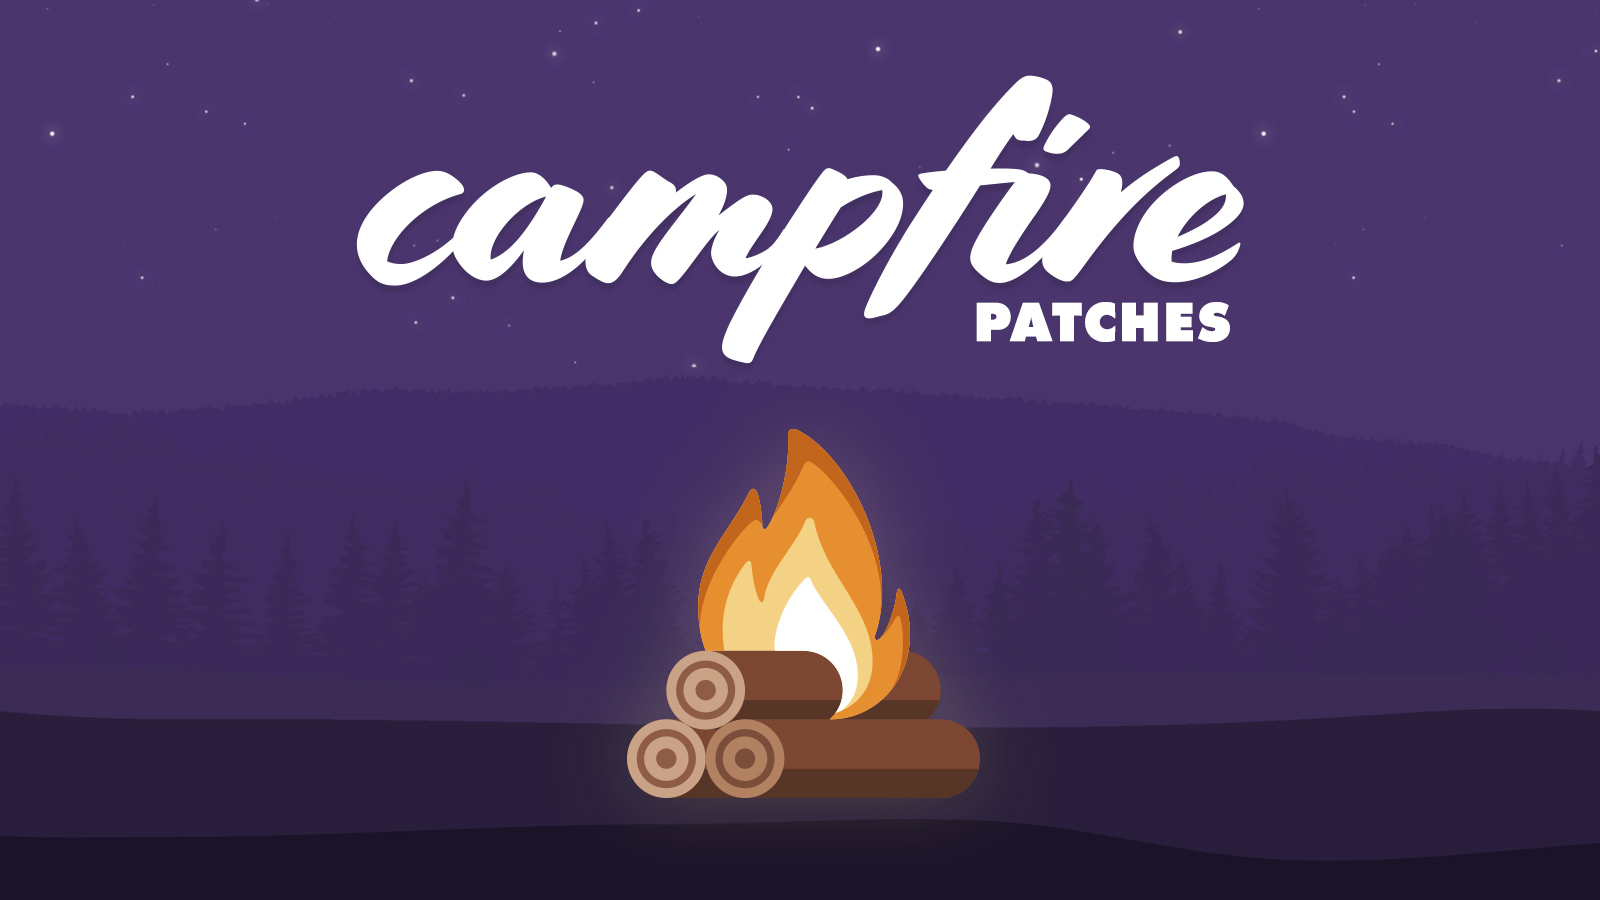 campfire-patches.jpg